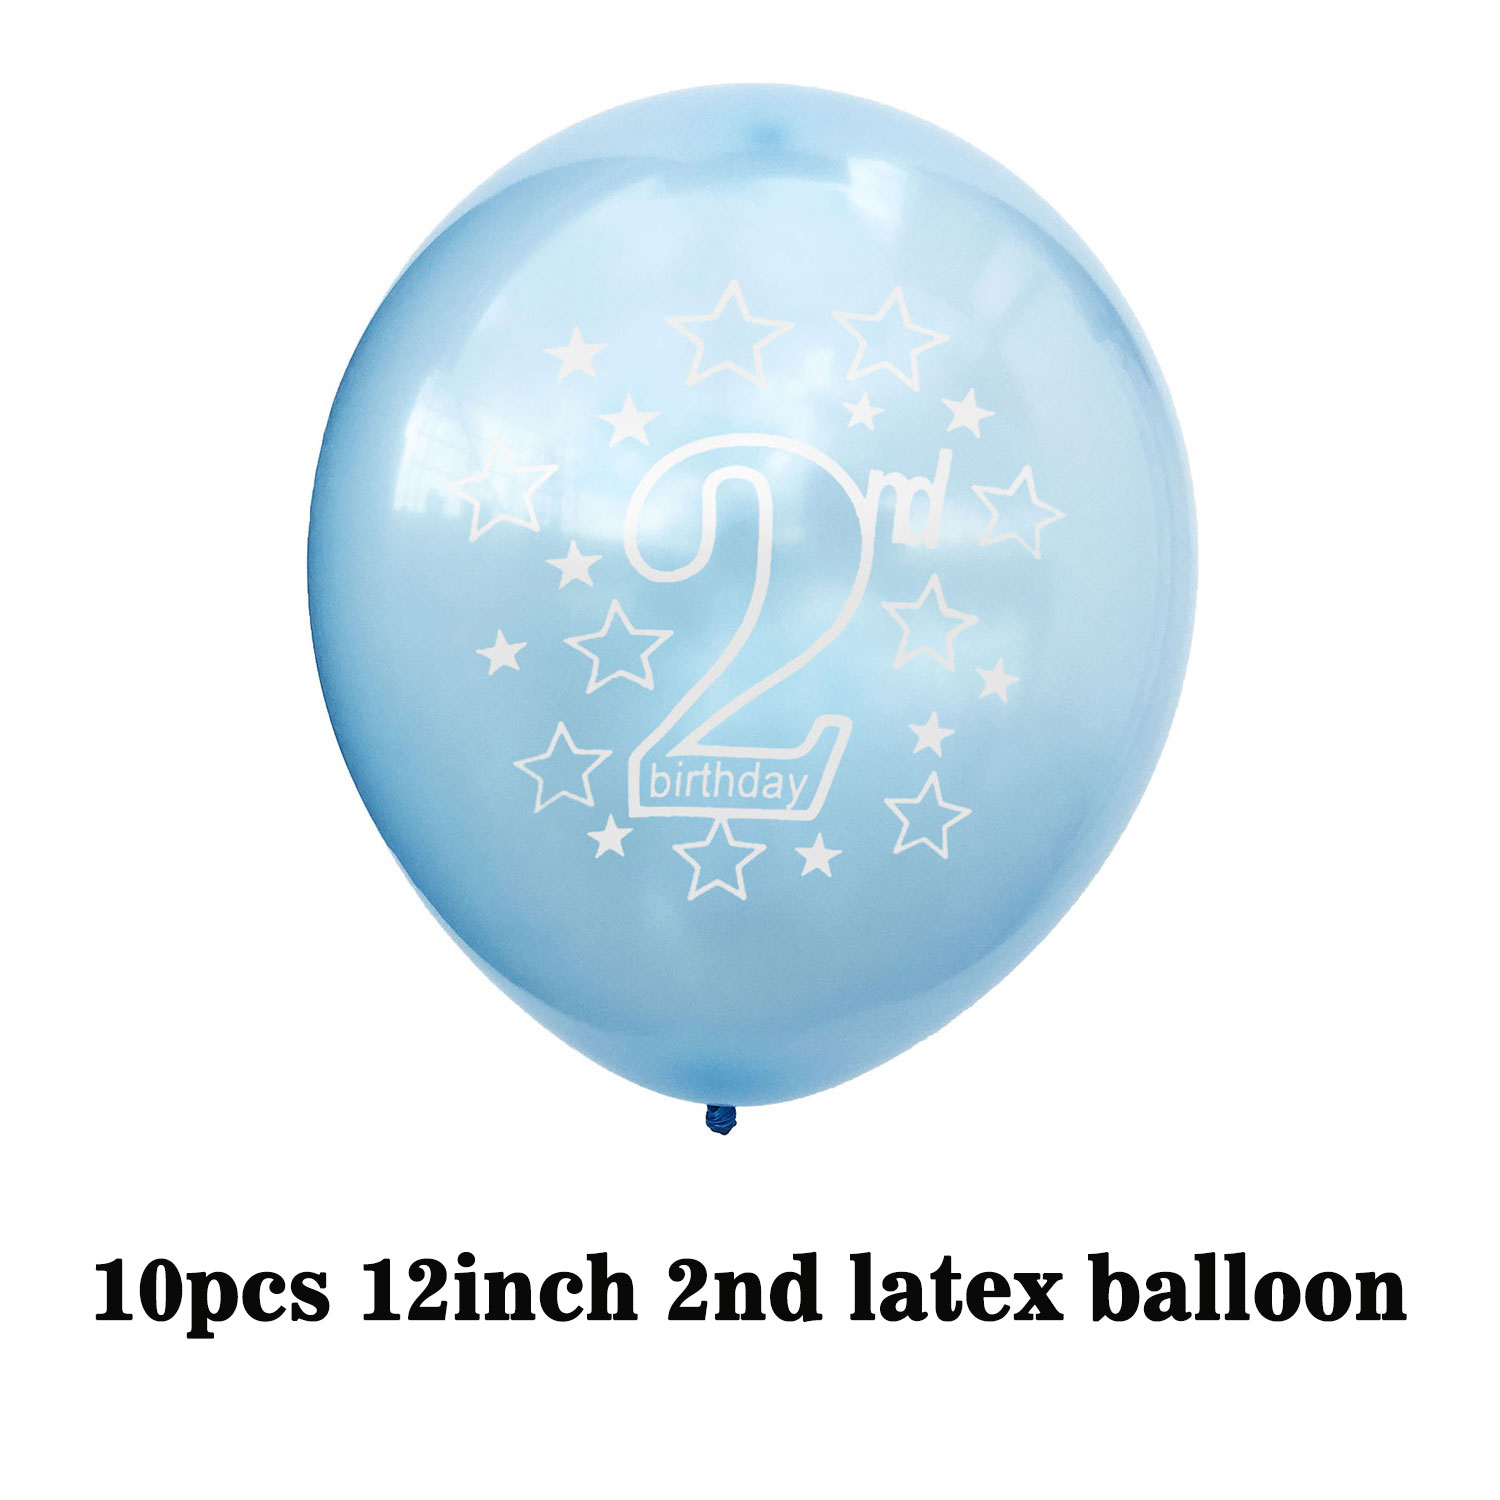 AGE 2 BIRTHDAY BANNERS BOY AND GIRL PARTY DECORATIONS FOR 2ND Celebrations Occasions Home